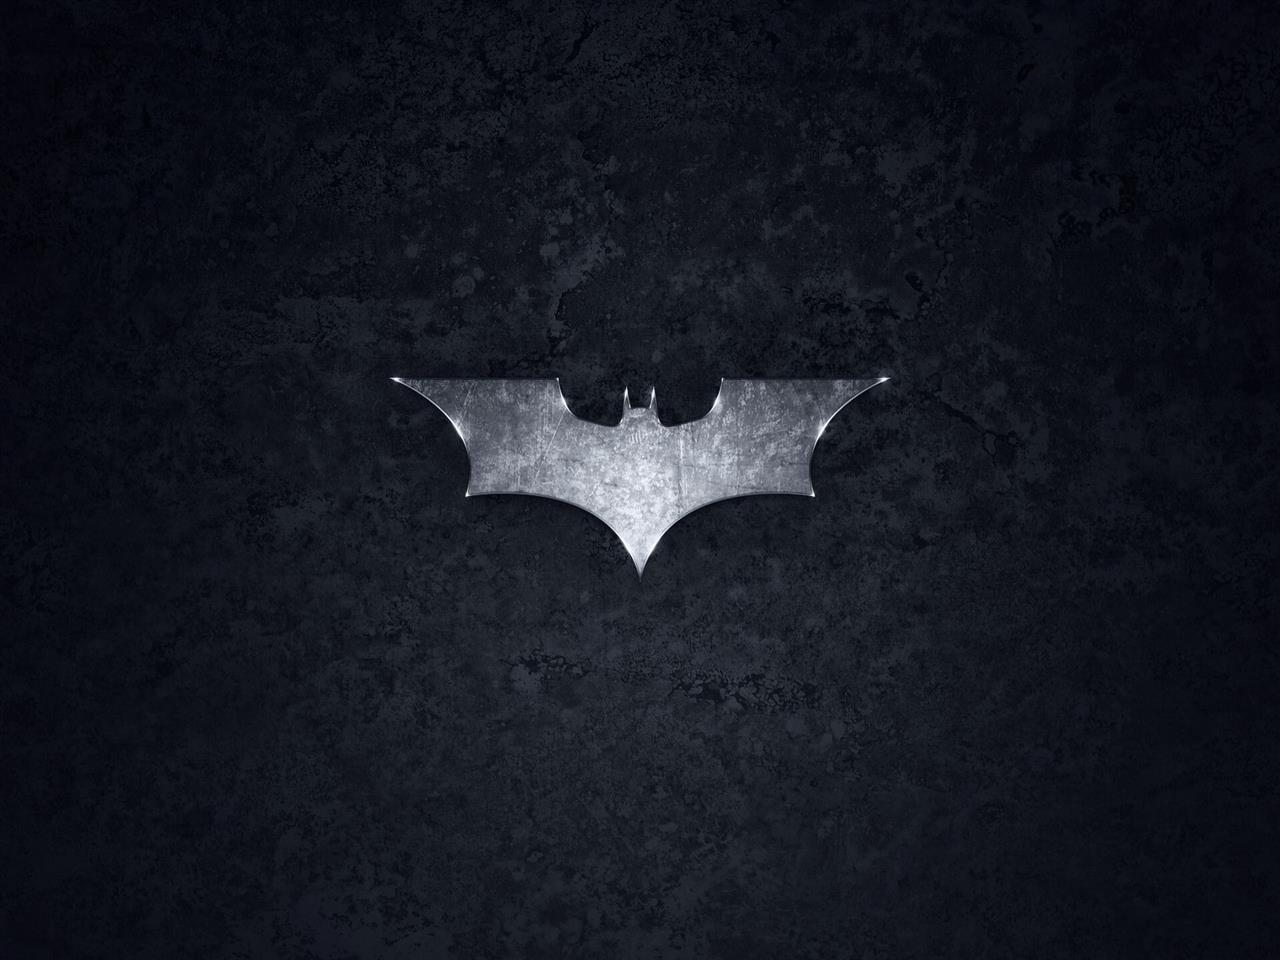 1280x960 Batman Logo in Black Background